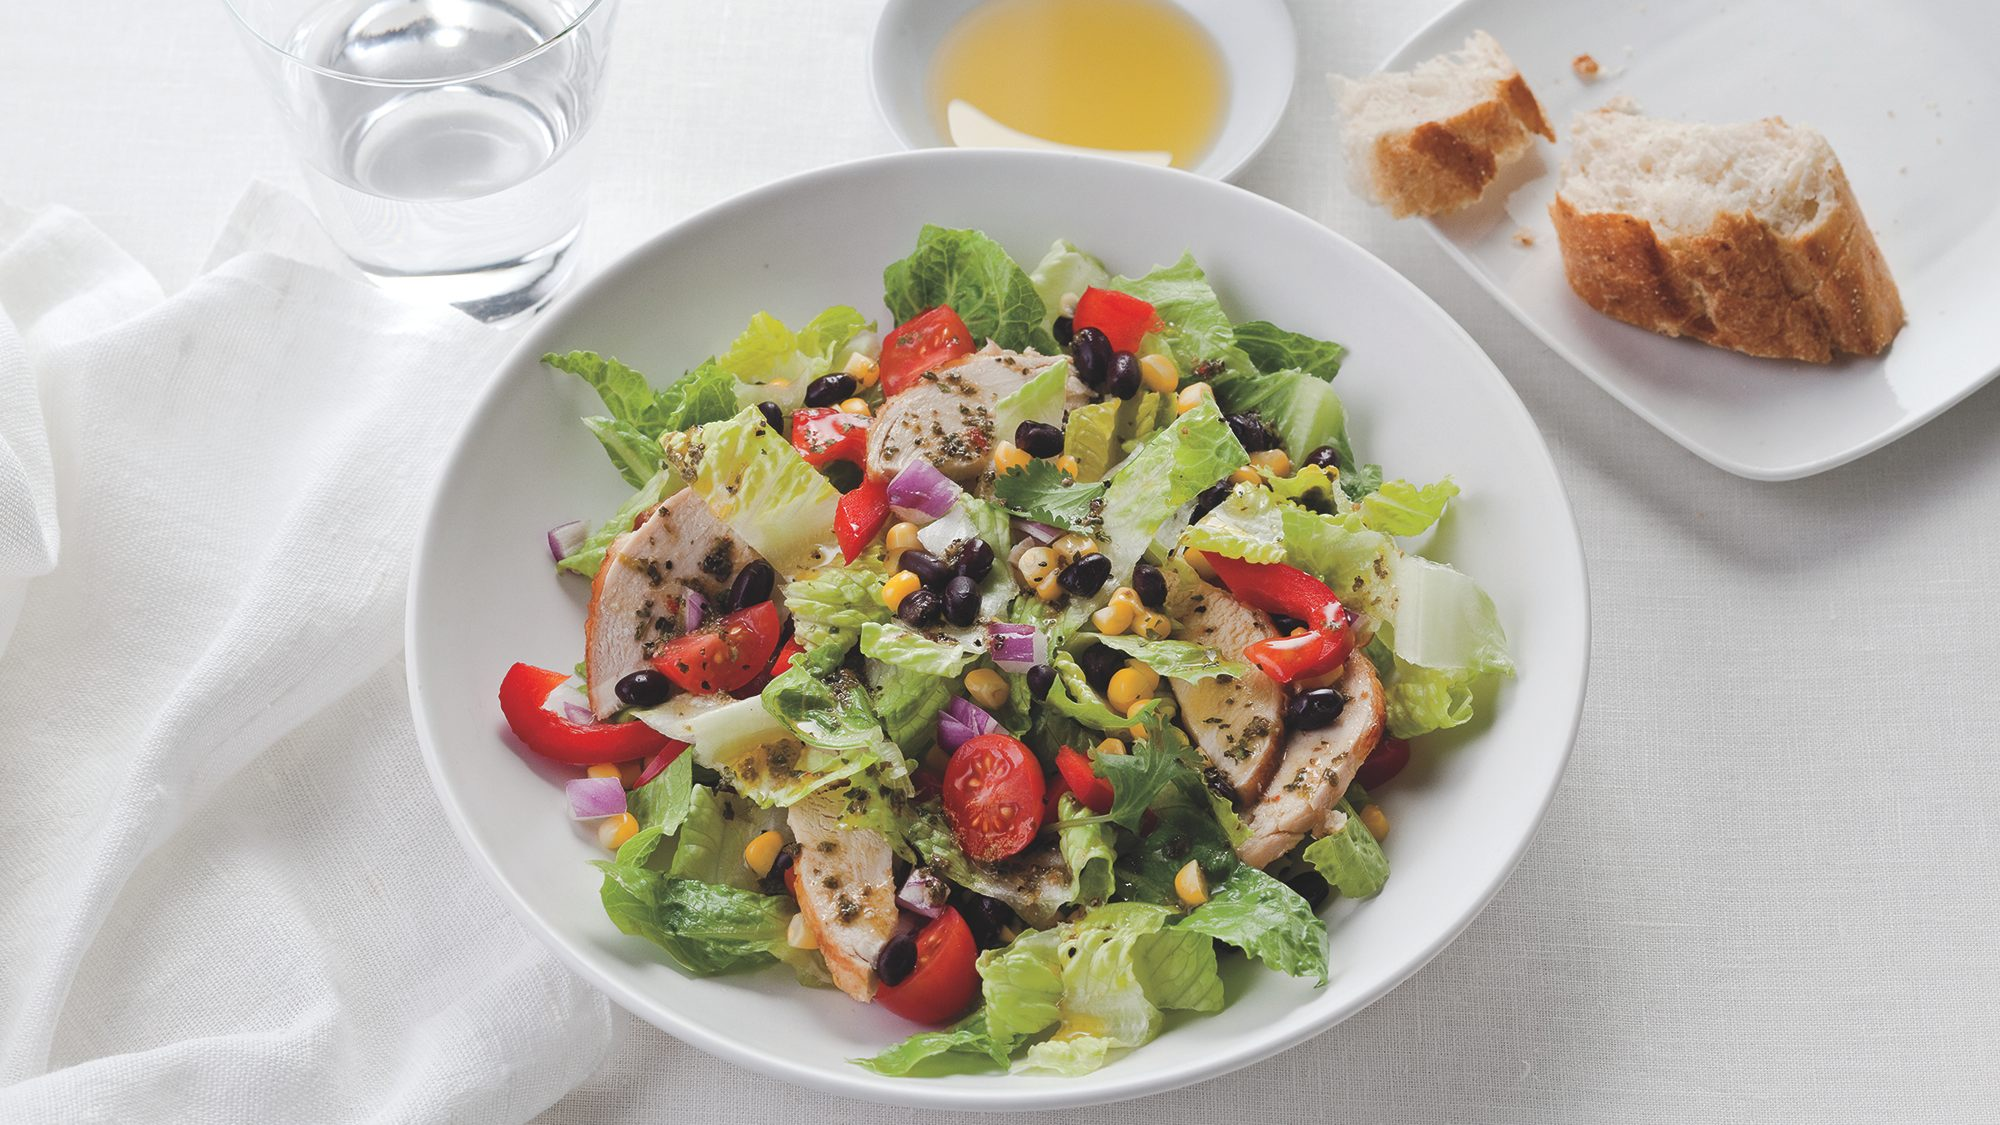 spicy-black-bean-salad-with-chicken-and-roasted-cumin-vinaigrette.jpg